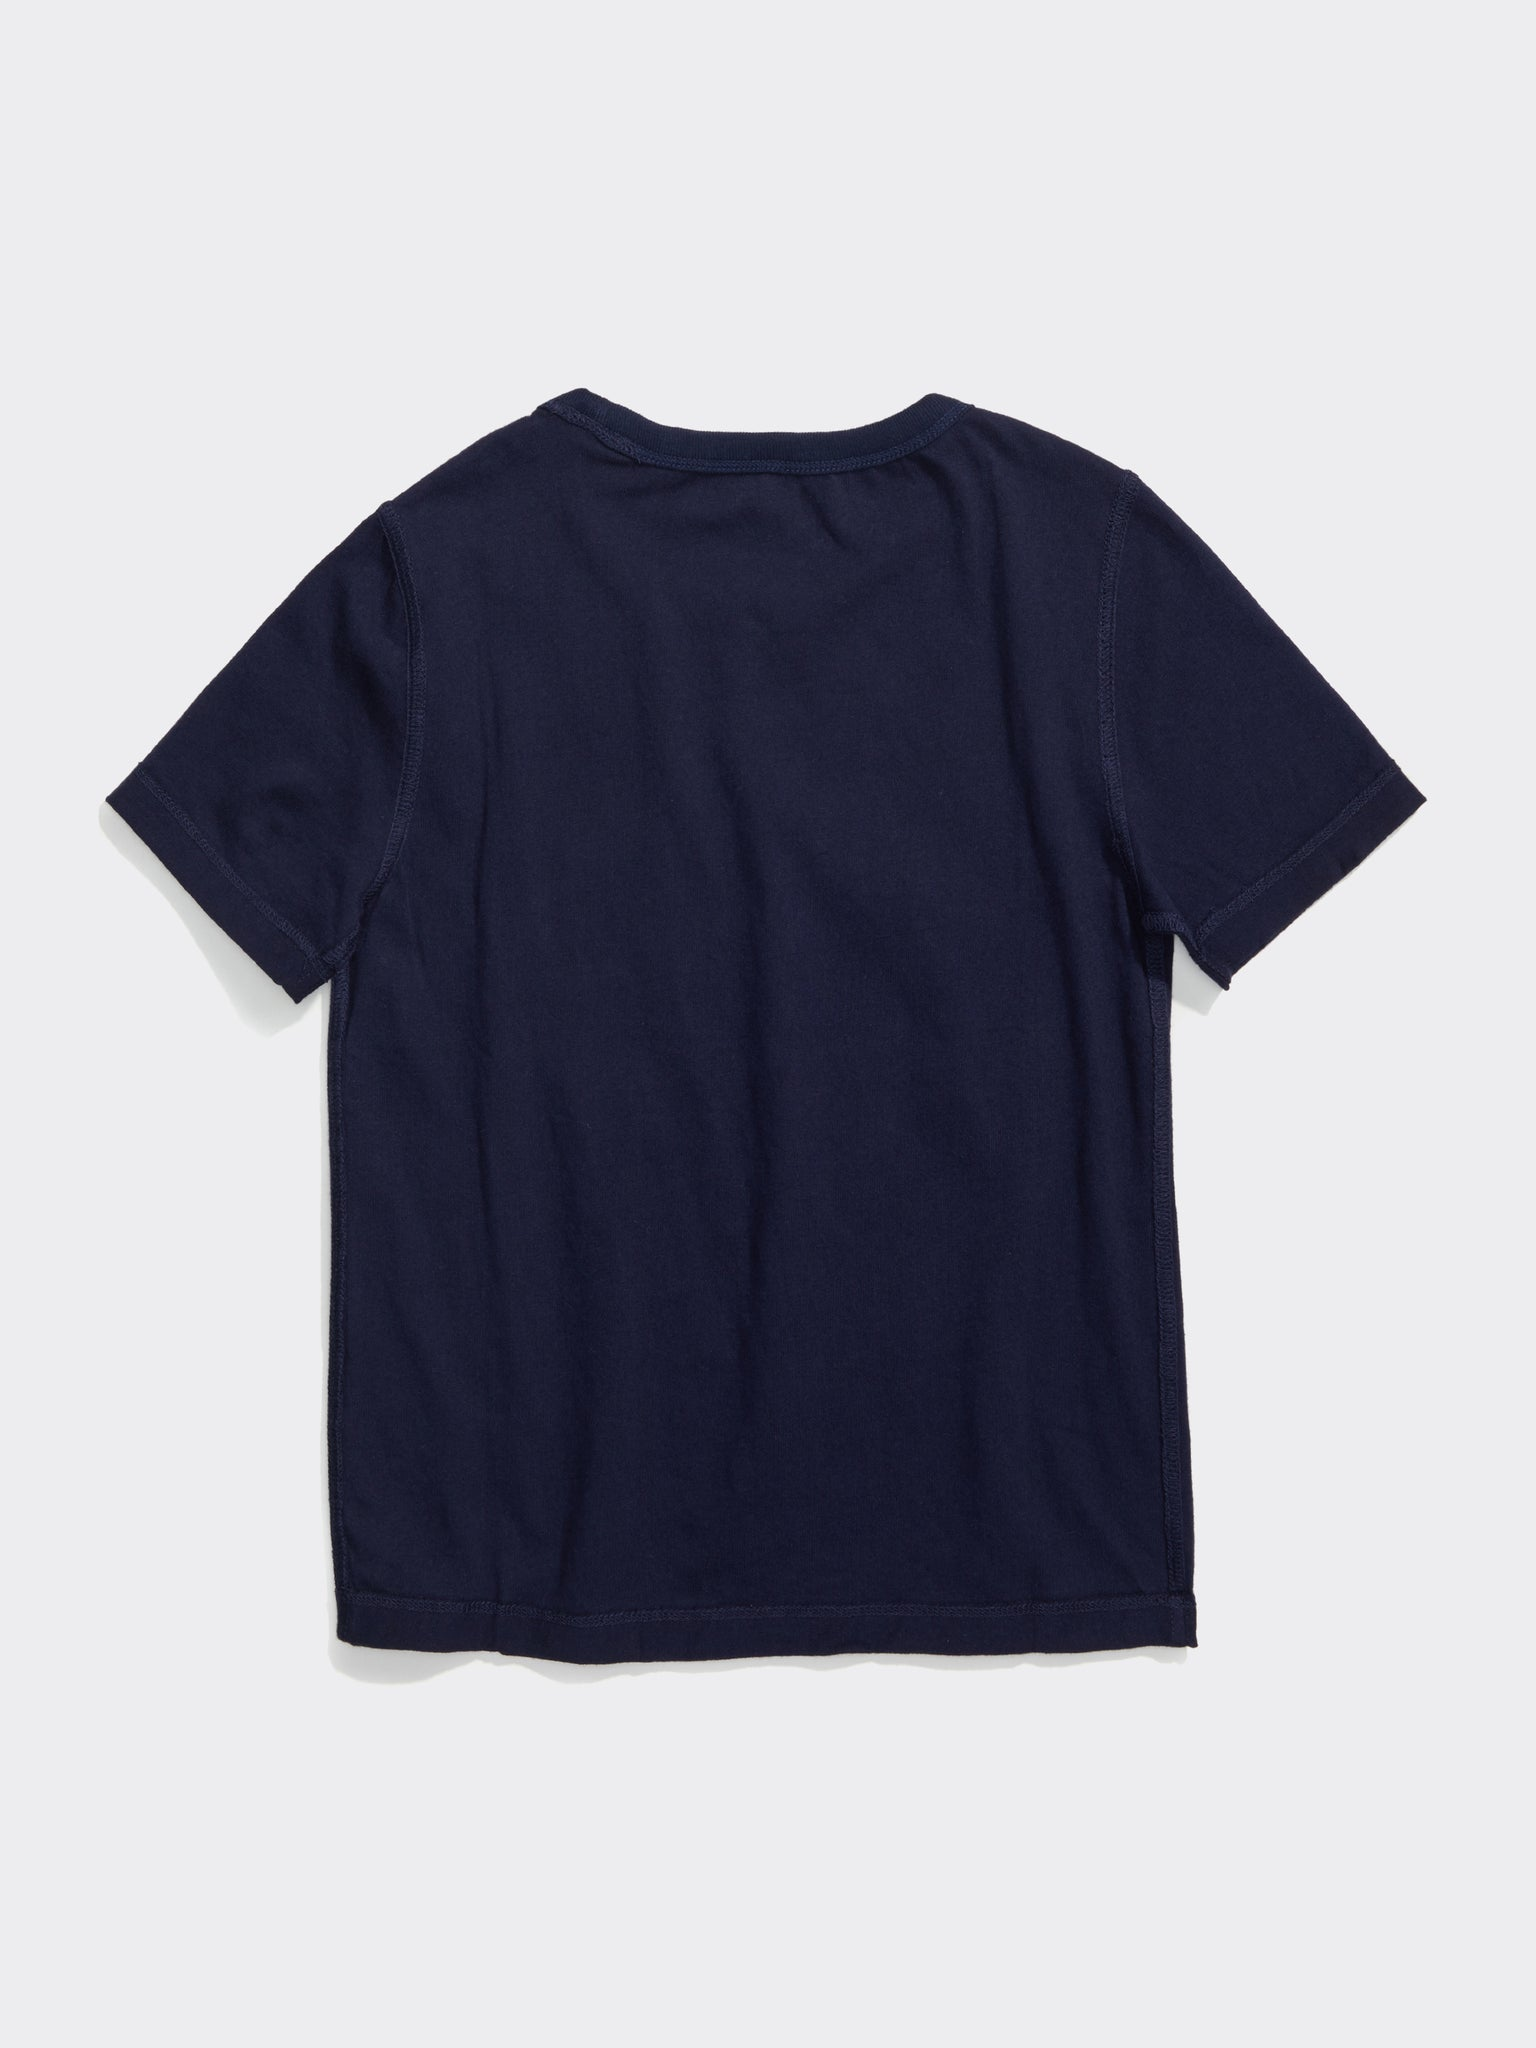 Shaggy Tee (Boys) - Navy